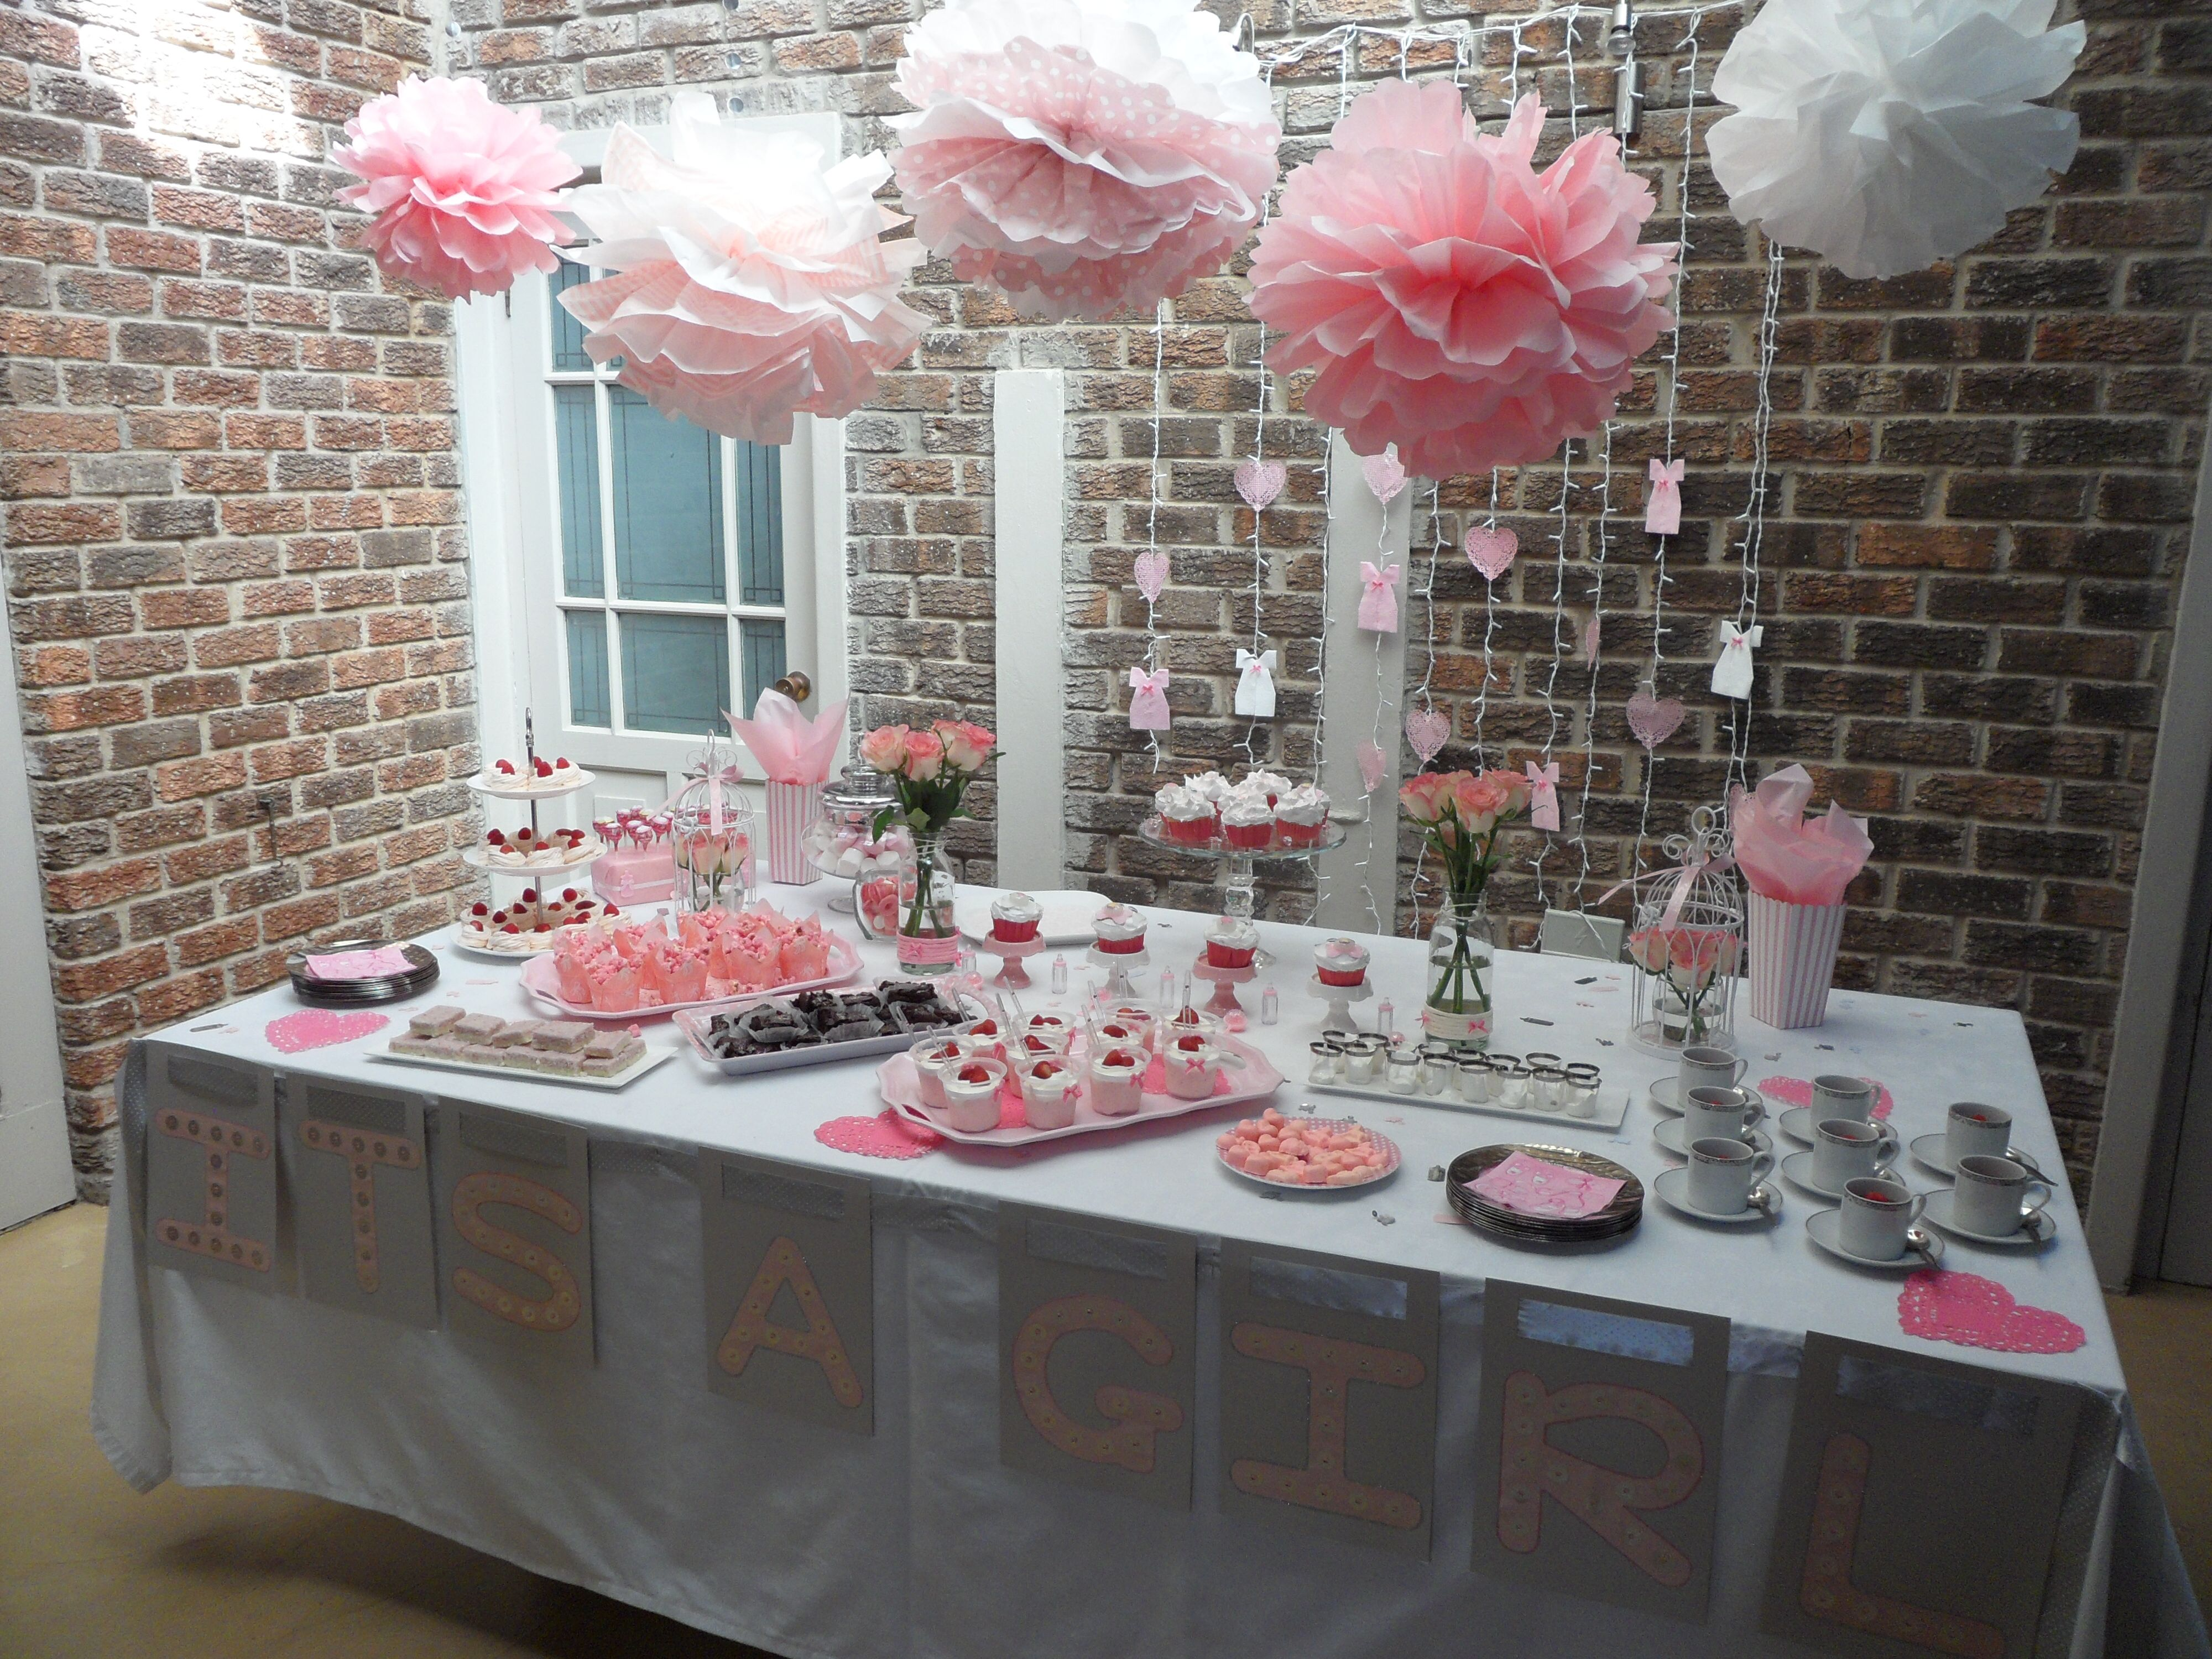 Girls baby shower and tea party with Pom-poms